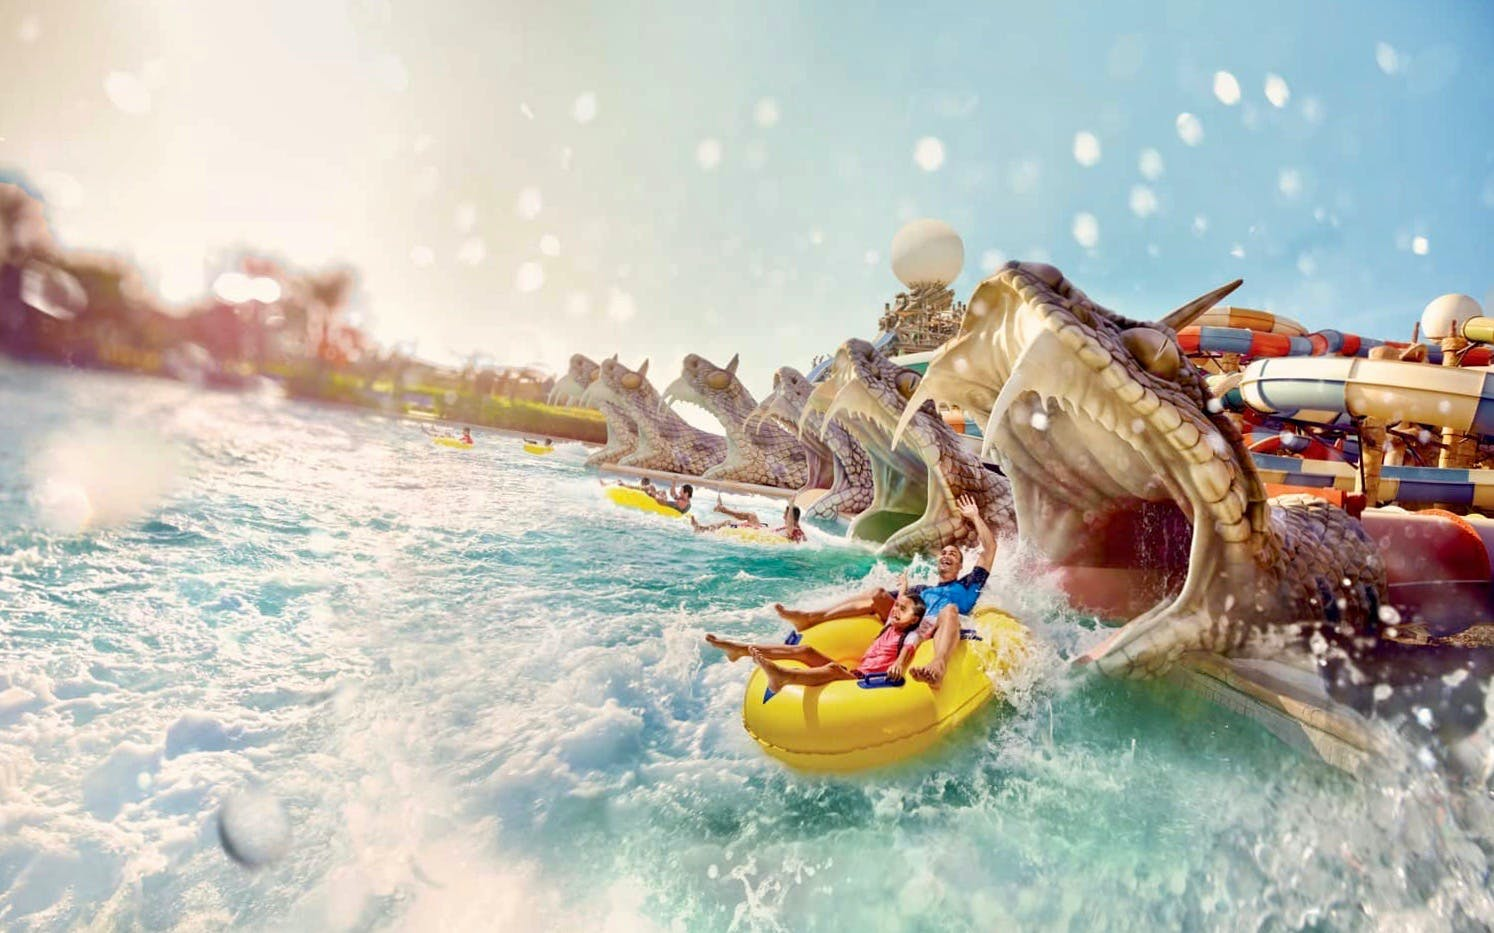 yas waterworld + free meal voucher-3